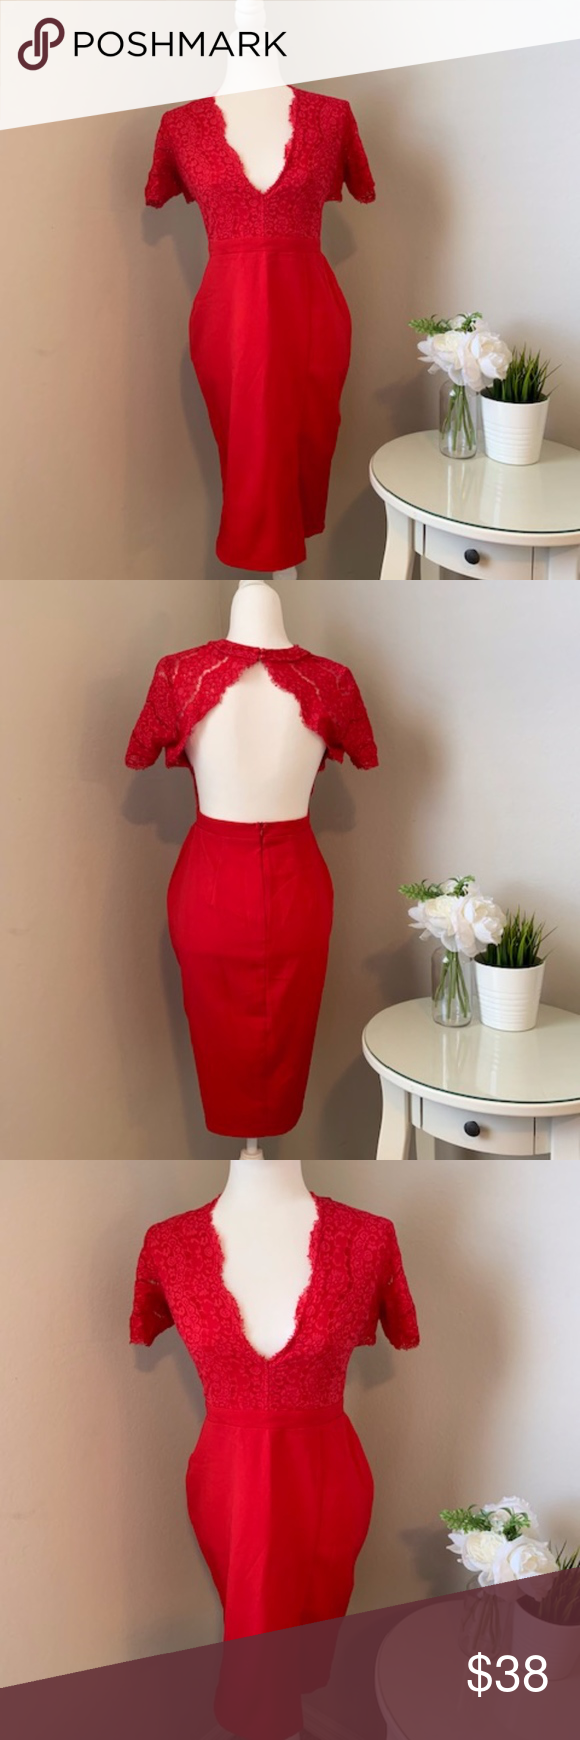 MISSGUIDED Red Lace Backless Cocktail Dress MISSGUIDED Red Lace Backless Cocktail Dress  Condition: Pre-loved, only worn ONCE on a birthday, Flawless  Size 10 Backless  Detailed lace top, secured with buttons behind the neck.  Dress comes to the knee and has a split on the right leg. Missguided Dresses Midi #backlesscocktaildress